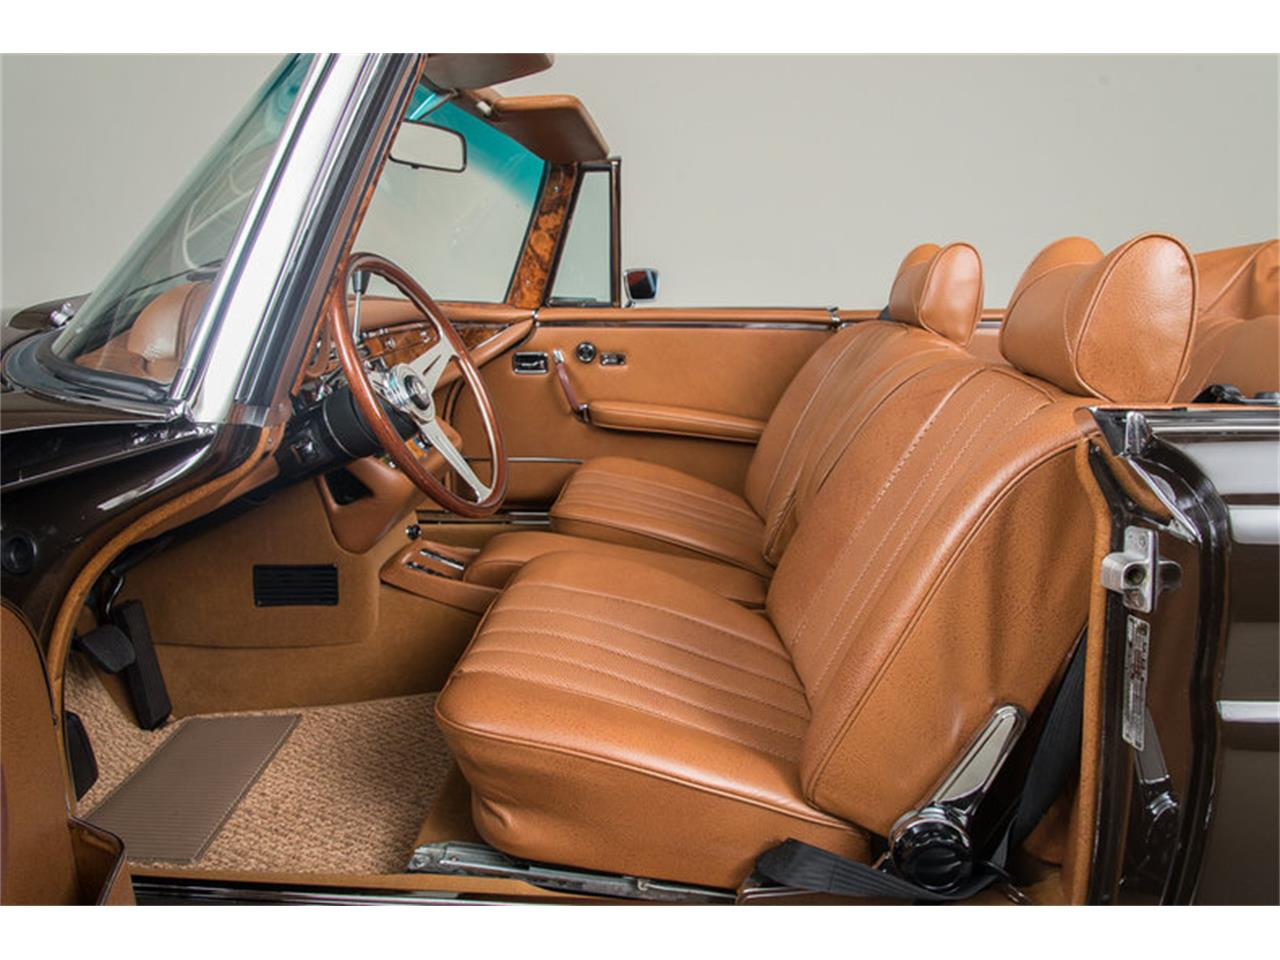 Large Picture of 1971 Mercedes-Benz 280 SE 3.5 Cabriolet located in Scotts Valley California Auction Vehicle Offered by Canepa - G0JQ